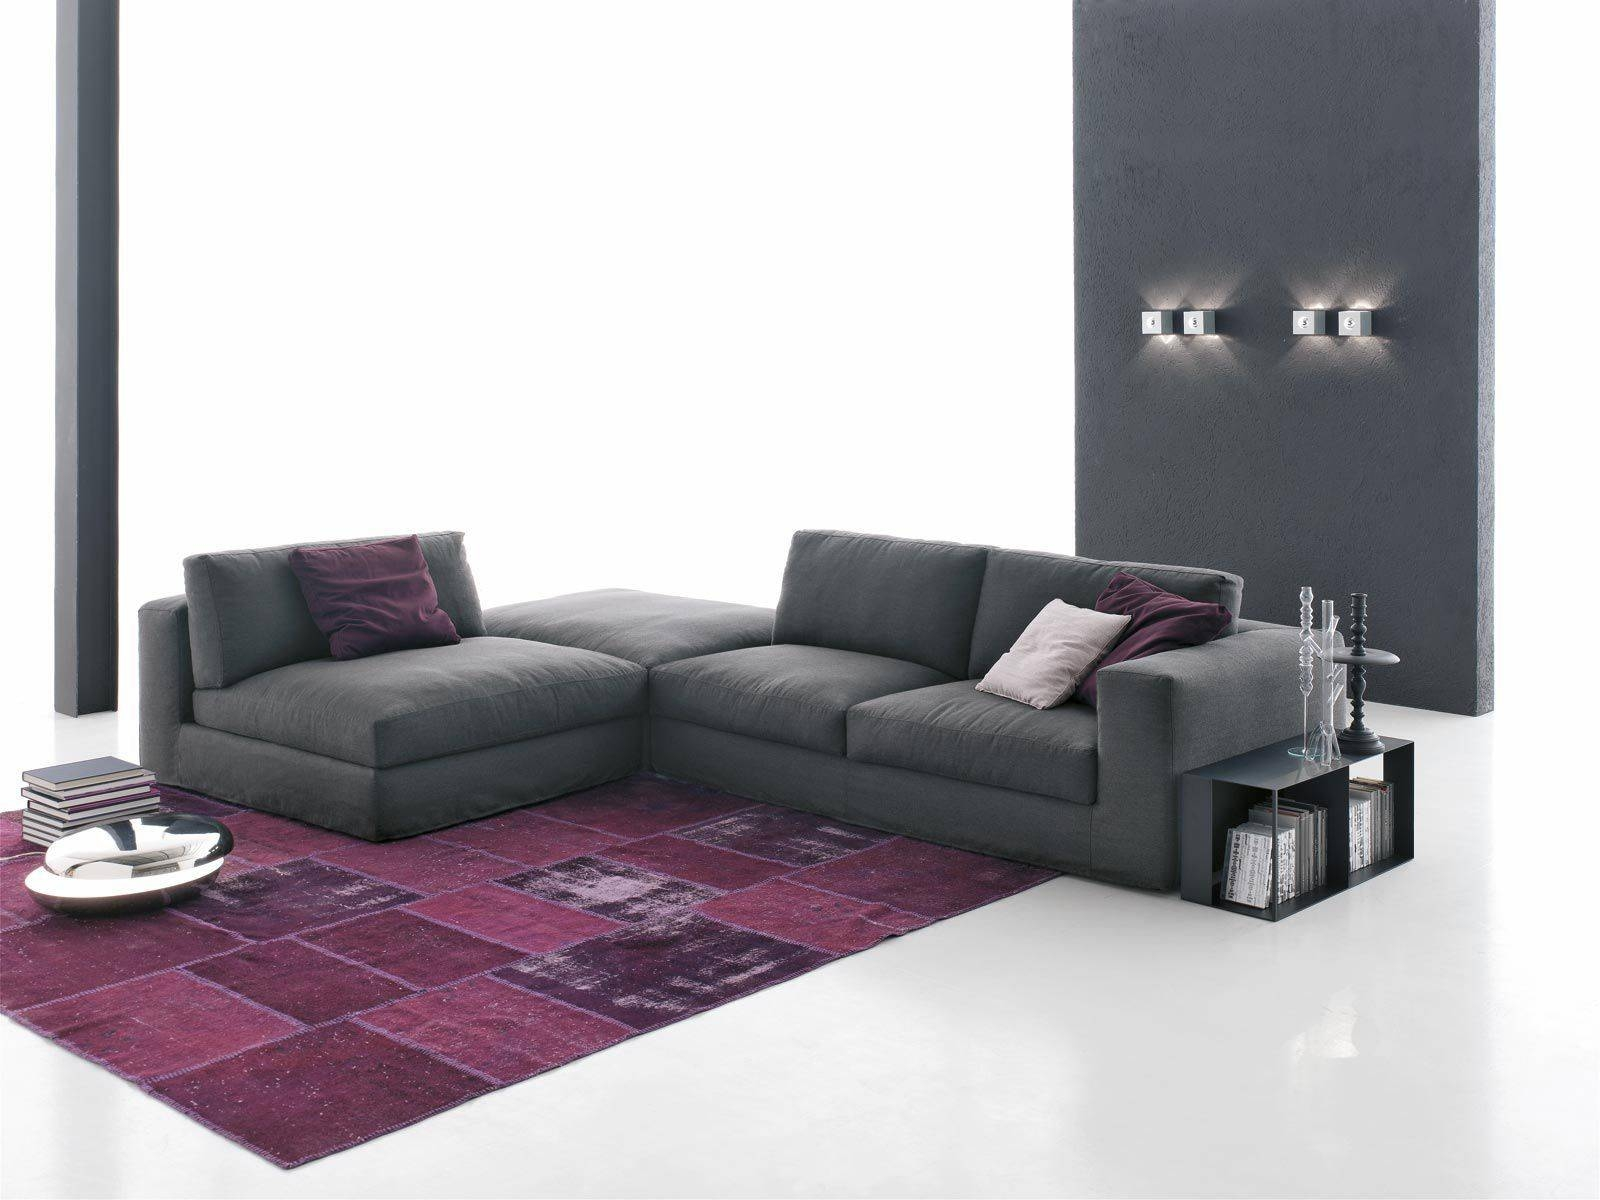 Modular Sofa / Contemporary / Fabric / 5-Seater - Babol - Gruppo within Contemporary Fabric Sofas (Image 19 of 30)